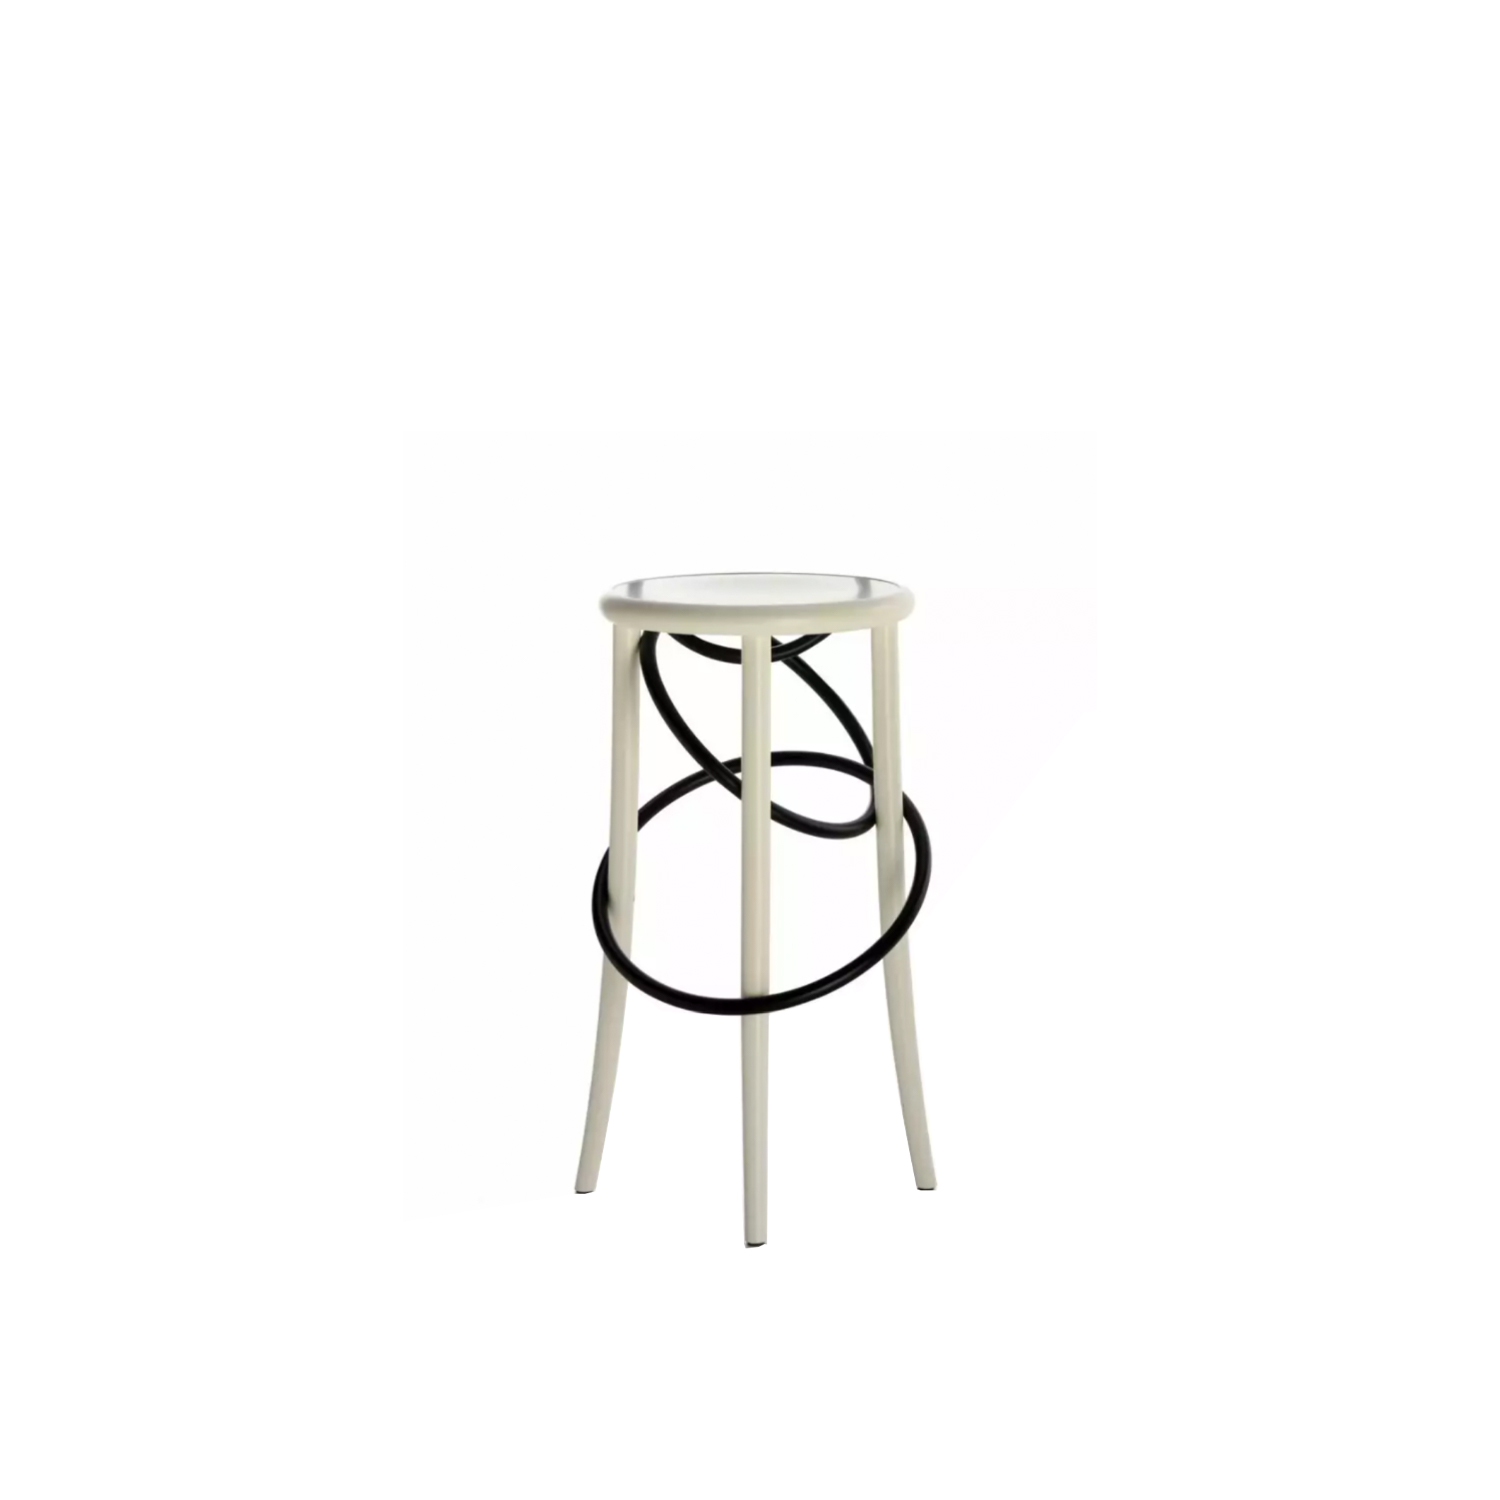 Cirque Two Tone Stool - The light and playful circus theme is at the core of the Cirque family of stools designed by Martino Gamper for Wiener GTV Design. The bent element, which is the brand's signature trait, is surprisingly and unexpectedly inserted in the base of the stool, forming the outline of the seat in the form of a chain comprising two or three wooden rings that loop around the full length of the stool legs. This striking styling effect blends in seamlessly with the functionality of the seat, which is available in two heights: a tall, sleek stool with or without backrest, Cirque L and Cirque M, and the stable and well-proportioned low stool, Cirque S. Also available in an original version with rings in a brass finish. | Matter of Stuff